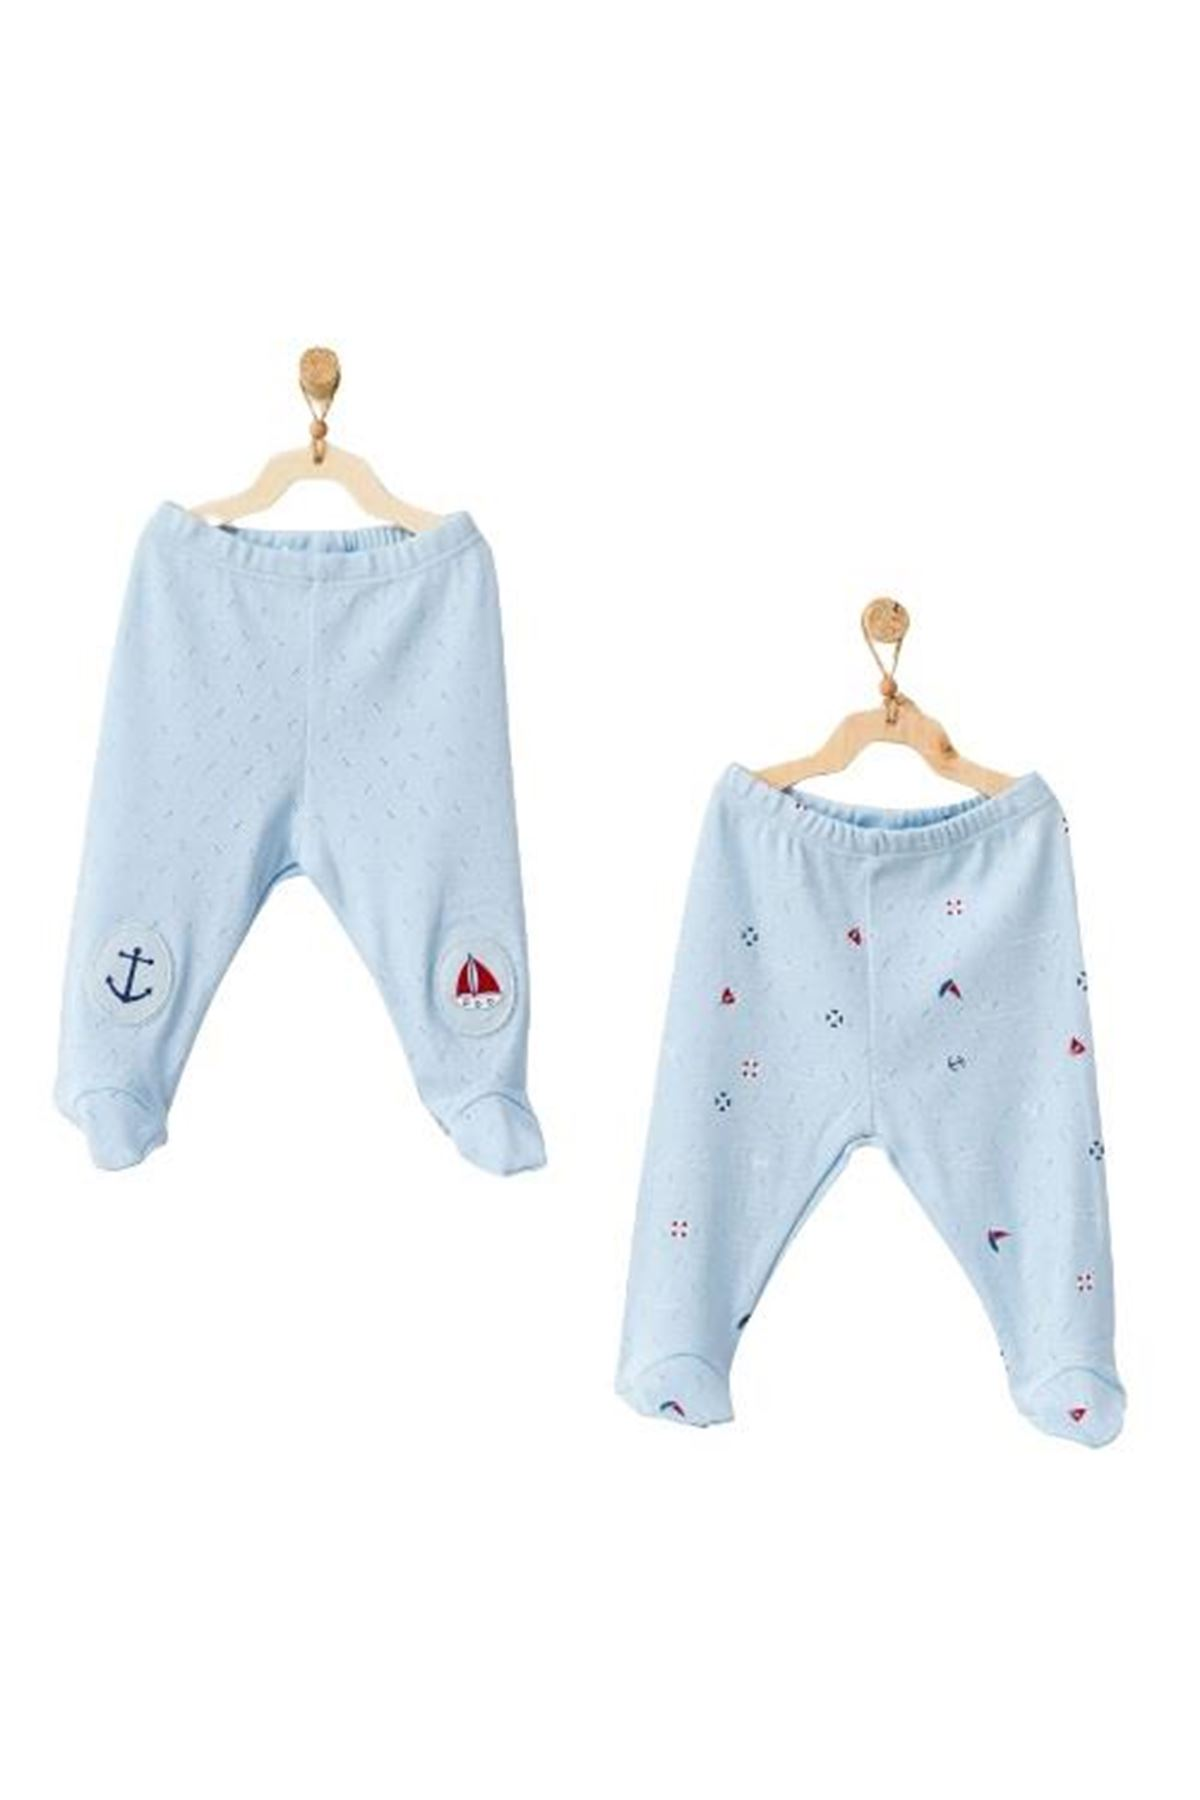 Andywawa AC21604 The Seaside Life 2li Patikli Bebe Pantolon Blue